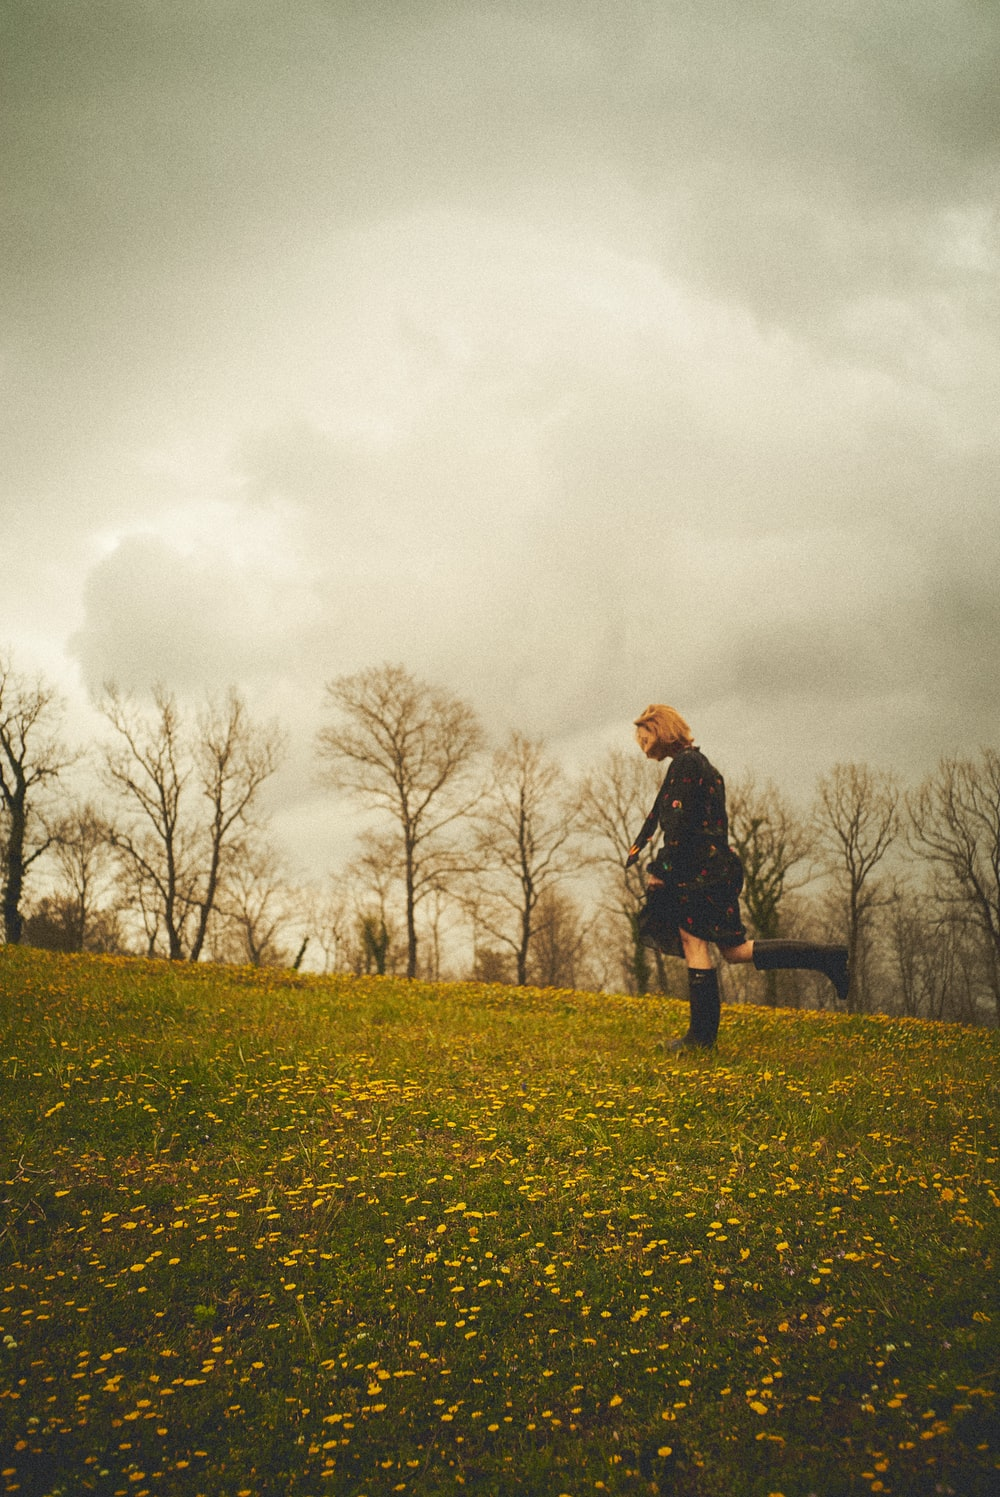 man in black jacket standing on green grass field under gray cloudy sky